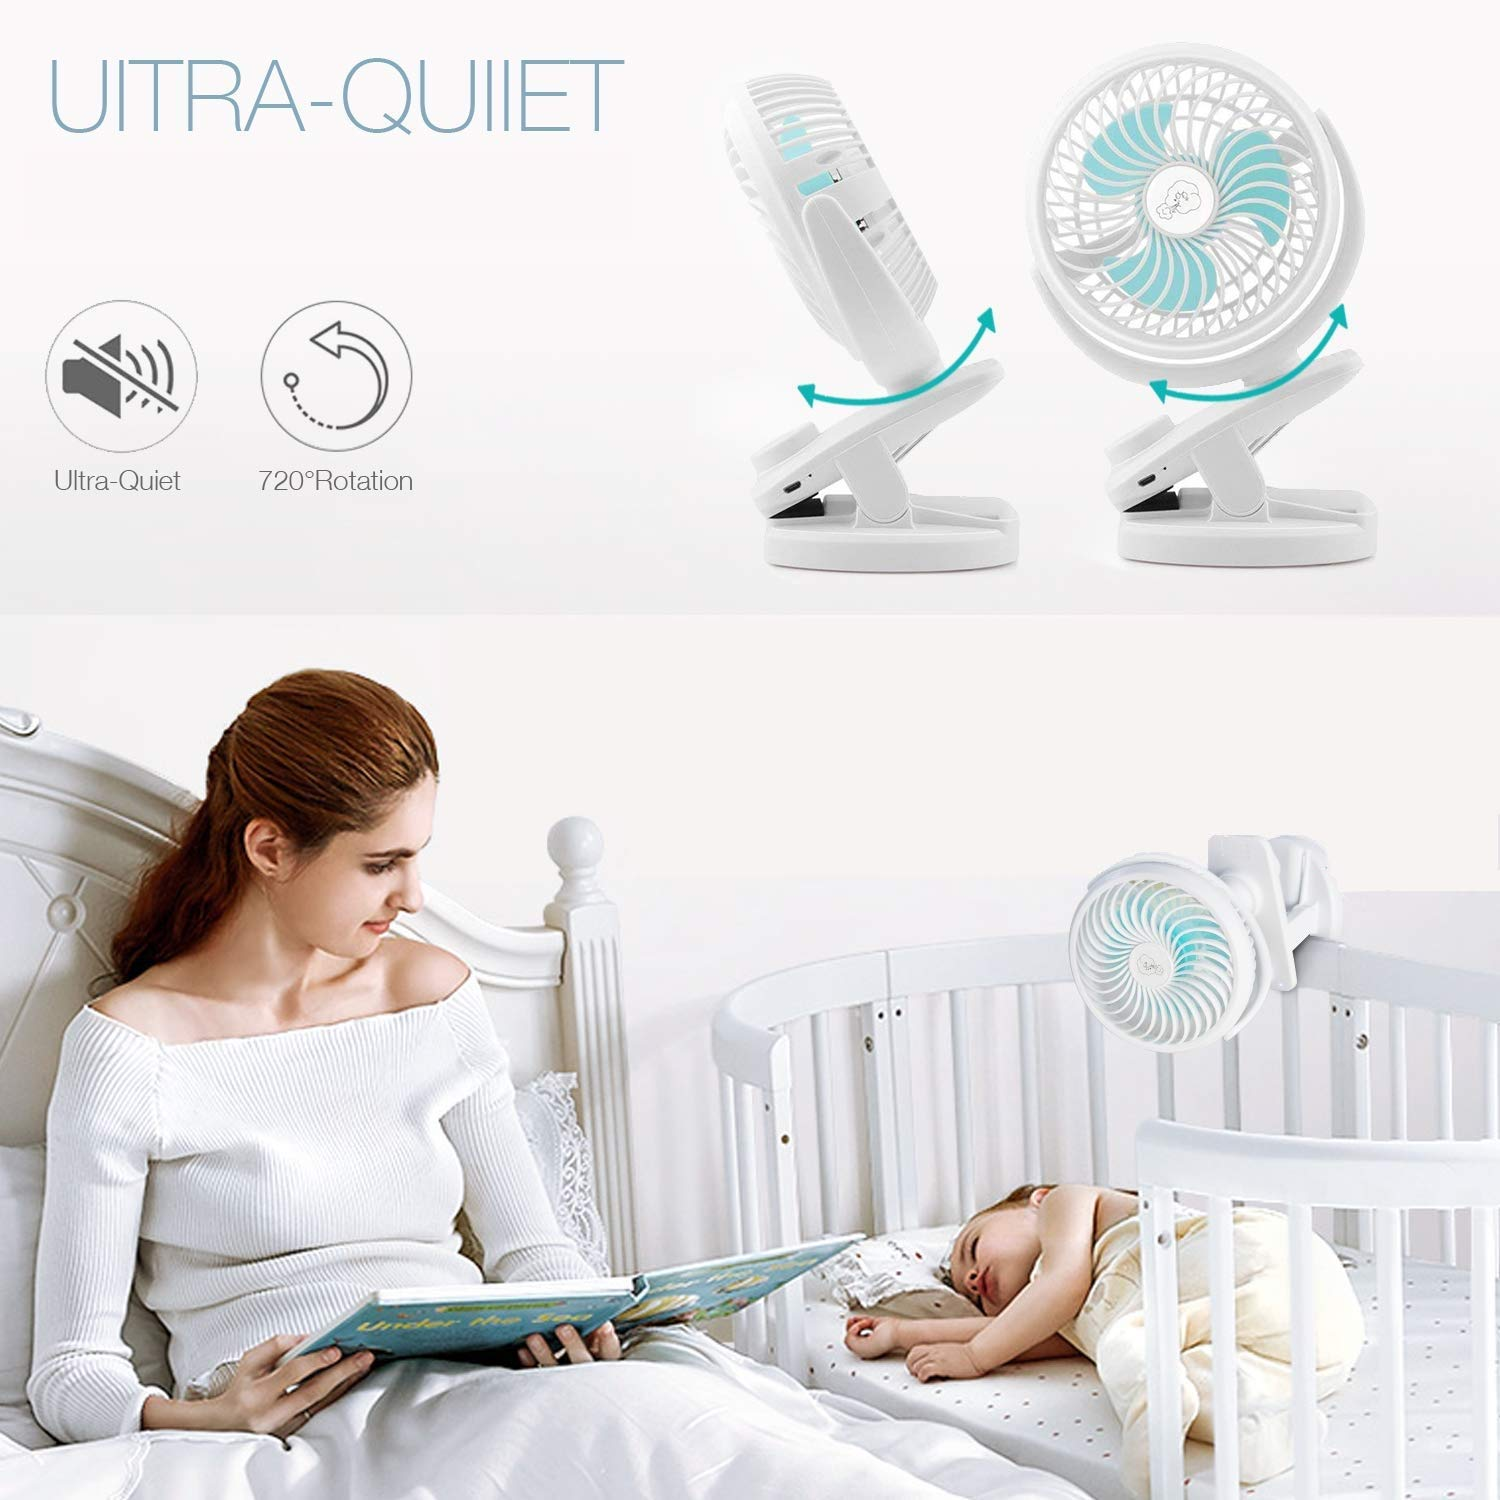 Ausein Mini Clip-on Fan 5000mAh Rechargeable Battery Operated USB Desk Fan Portable Personal Fan Small Quiet Stroller Fan for Home, Office, Travel, Camping, Baby Pram, Pushchairs, Buggy, Car (White)